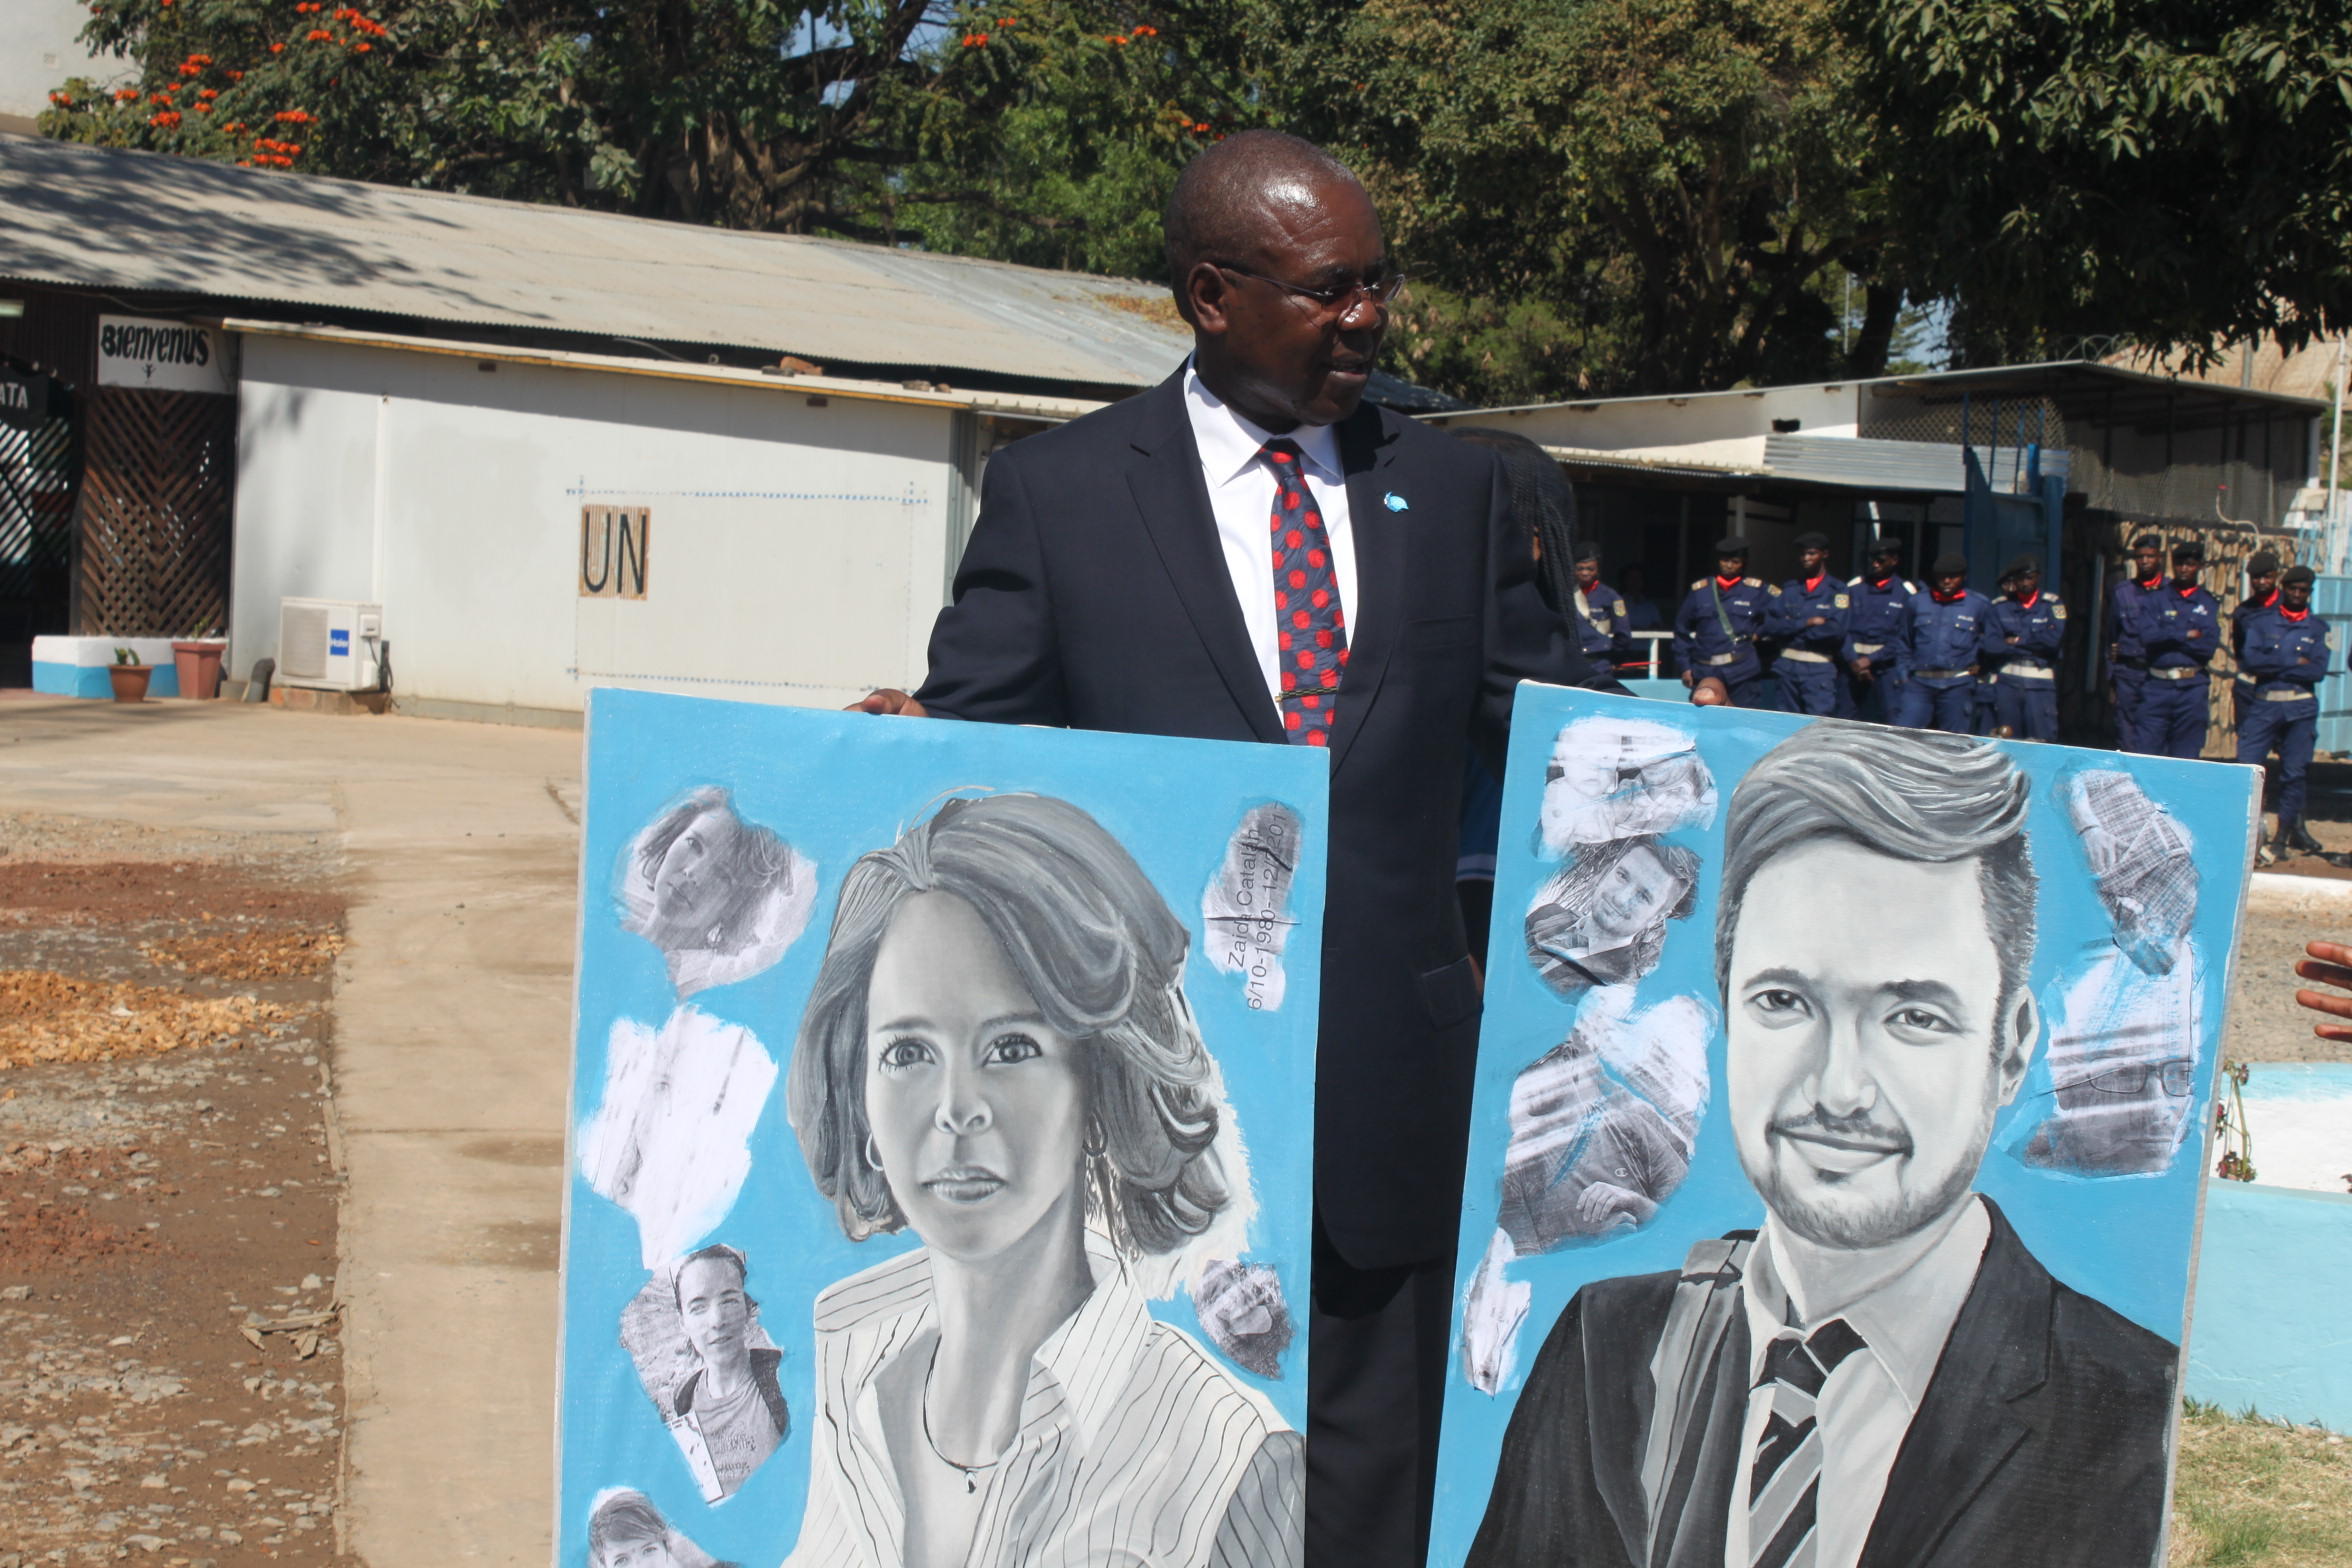 The Chief of MONUSCO Office, Josiah Obat, displays portraits of two murdered UN experts, Zaida Catalan and Michael Sharp. ( Flickr )